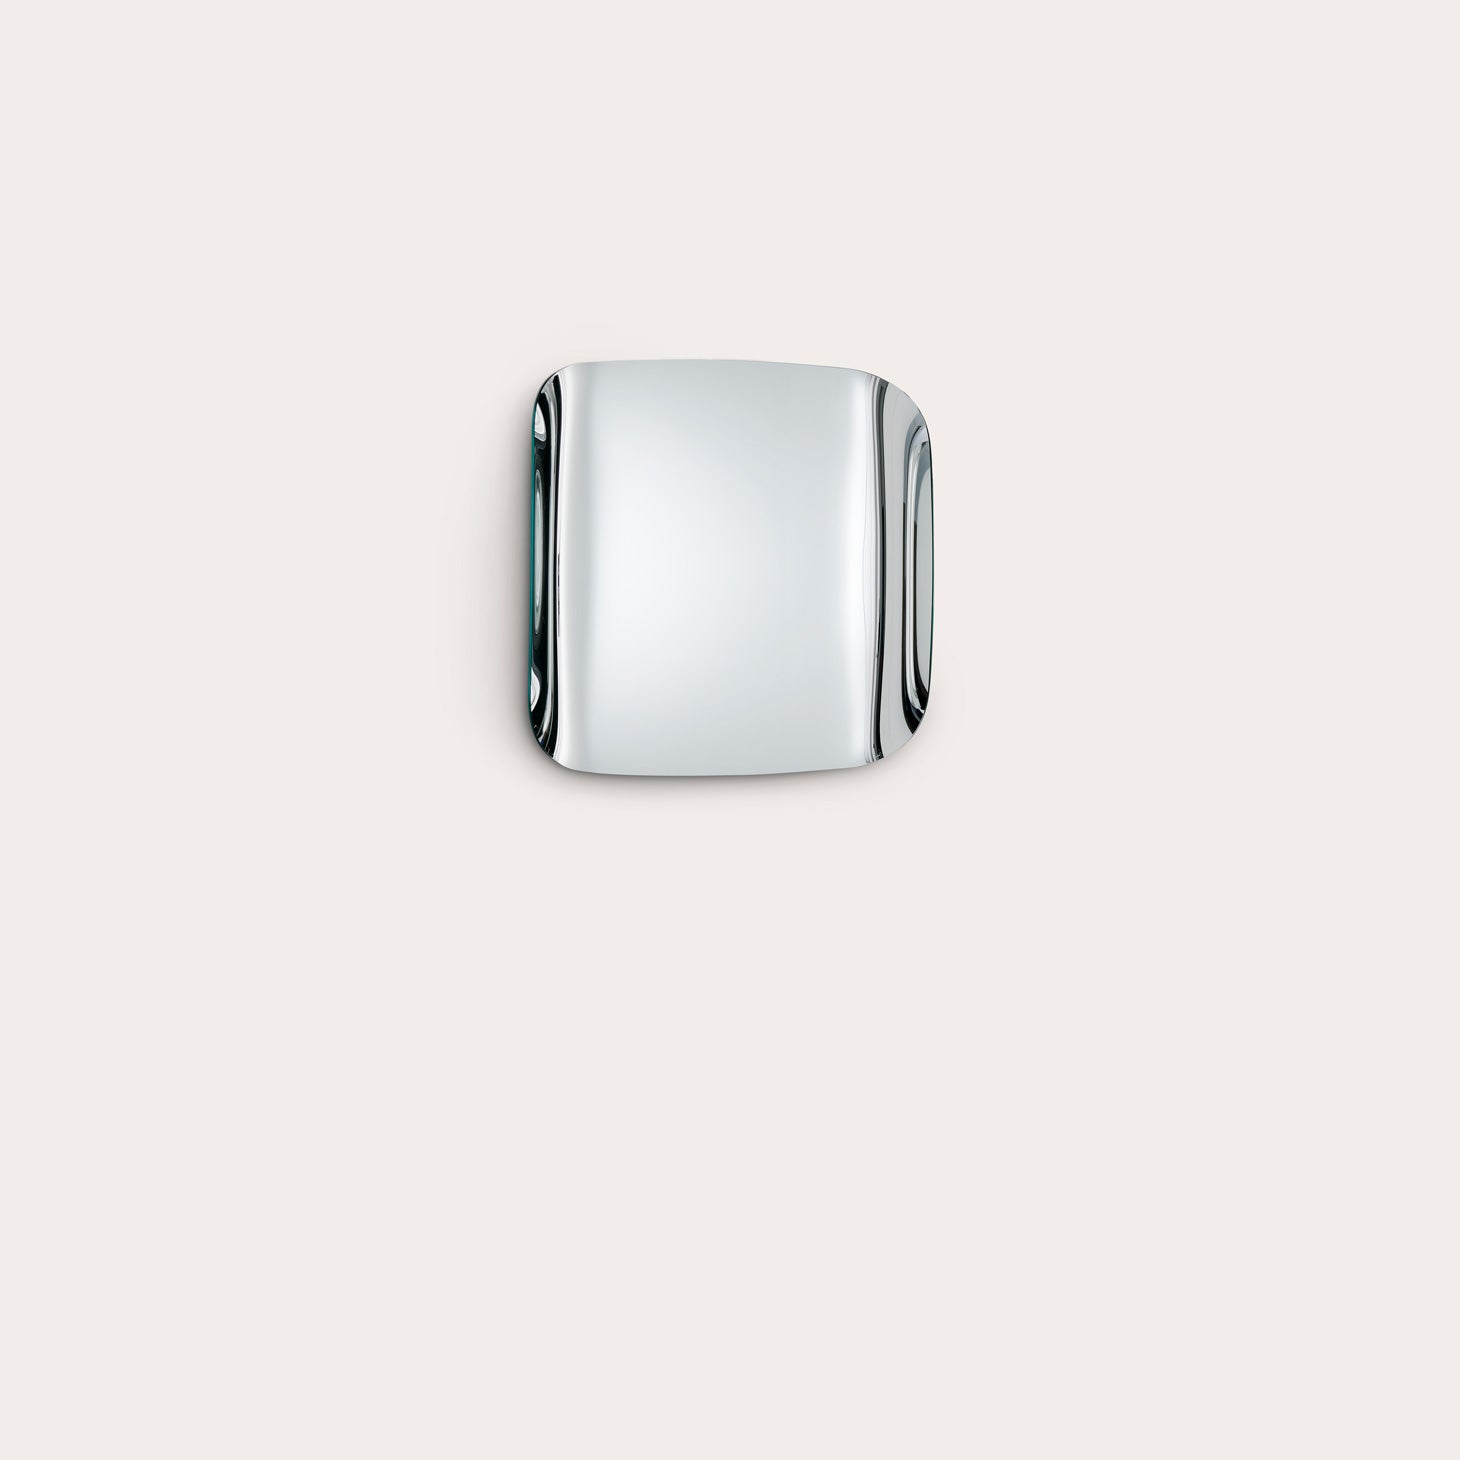 Marlene Mirror Accessories Philippe Starck Designer Furniture Sku: 288-100-10127